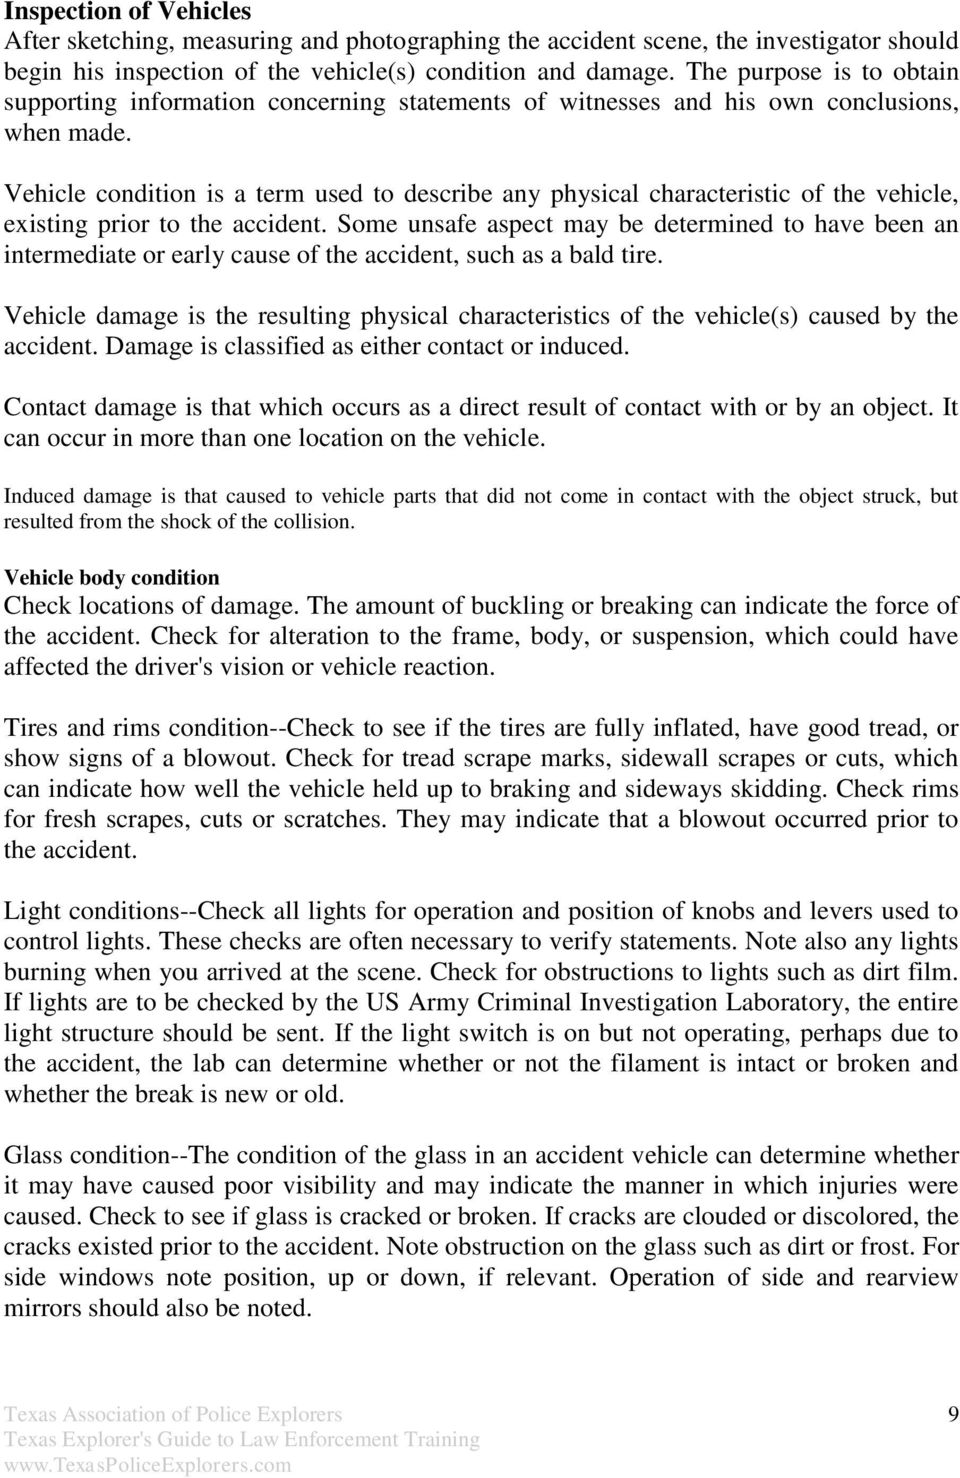 Vehicle condition is a term used to describe any physical characteristic of the vehicle, existing prior to the accident.